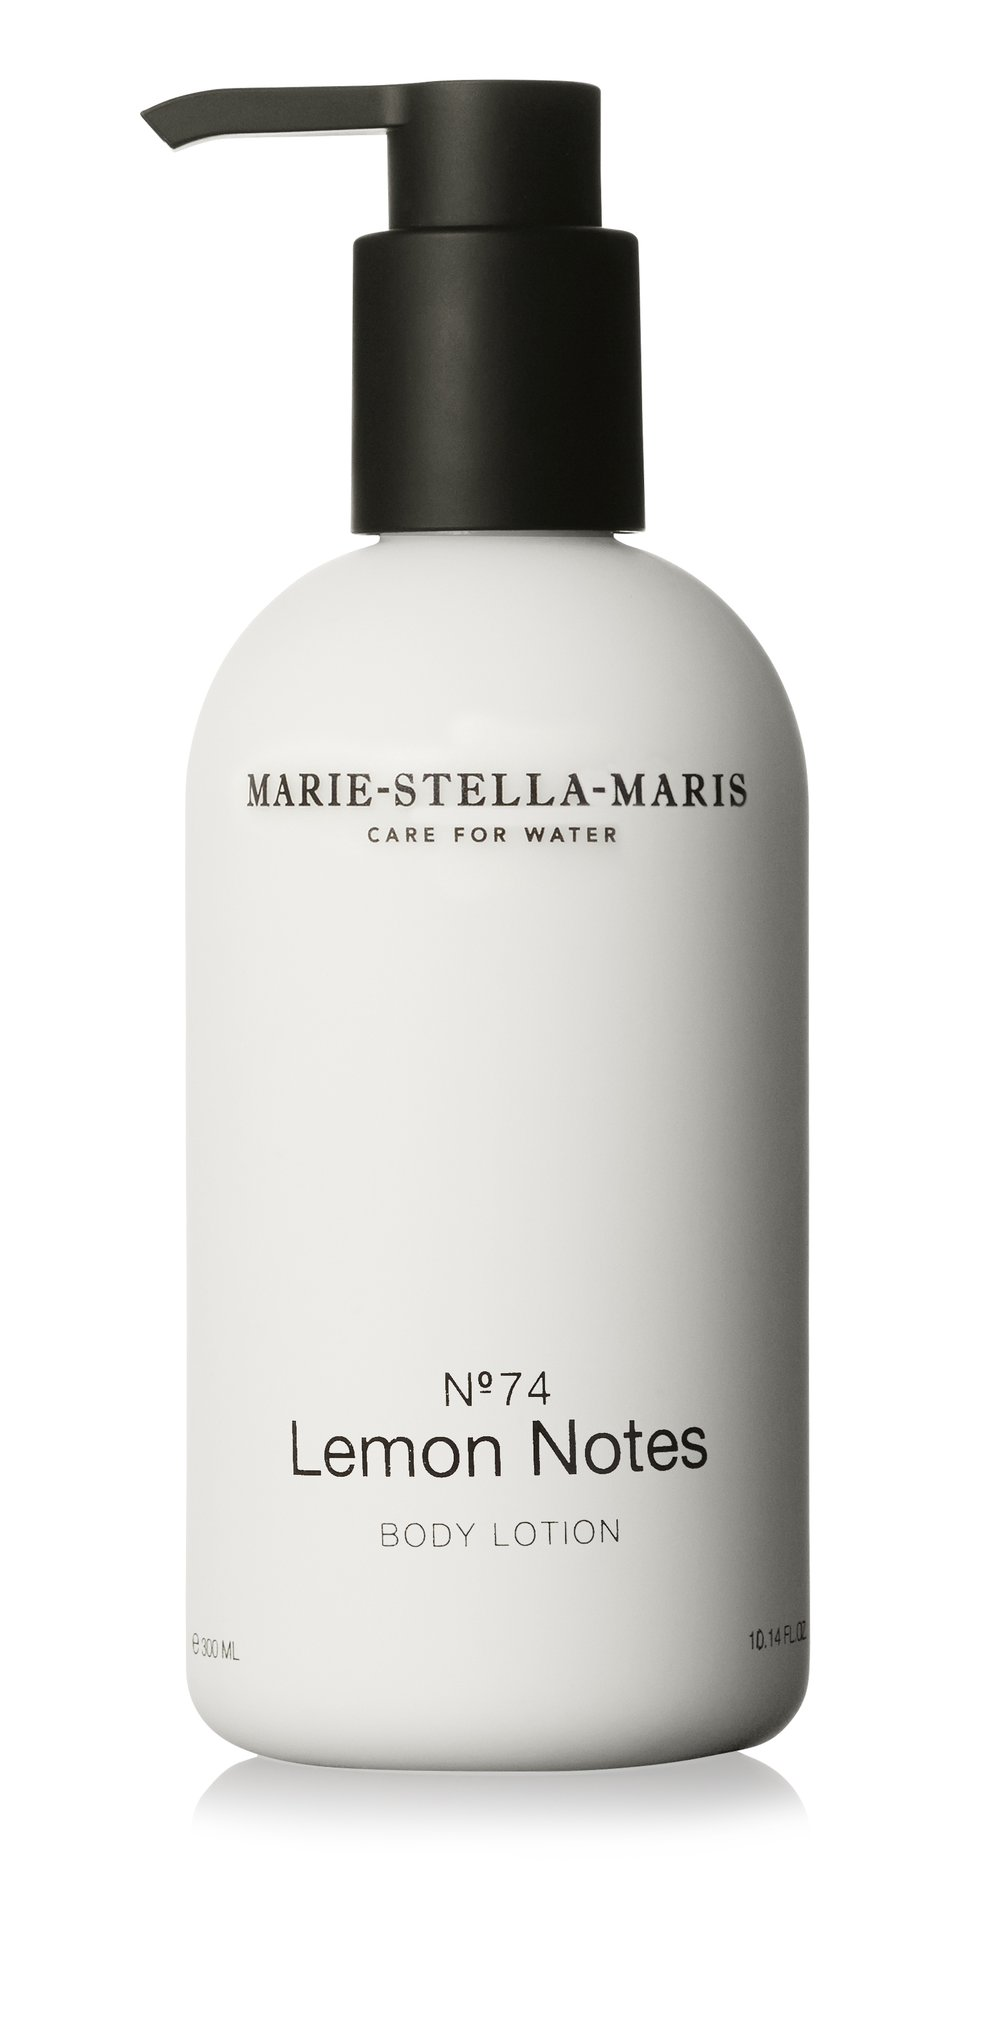 Marie-Stella-Maris-No74-BodyLotion-LemonNotes-300ml.jpg